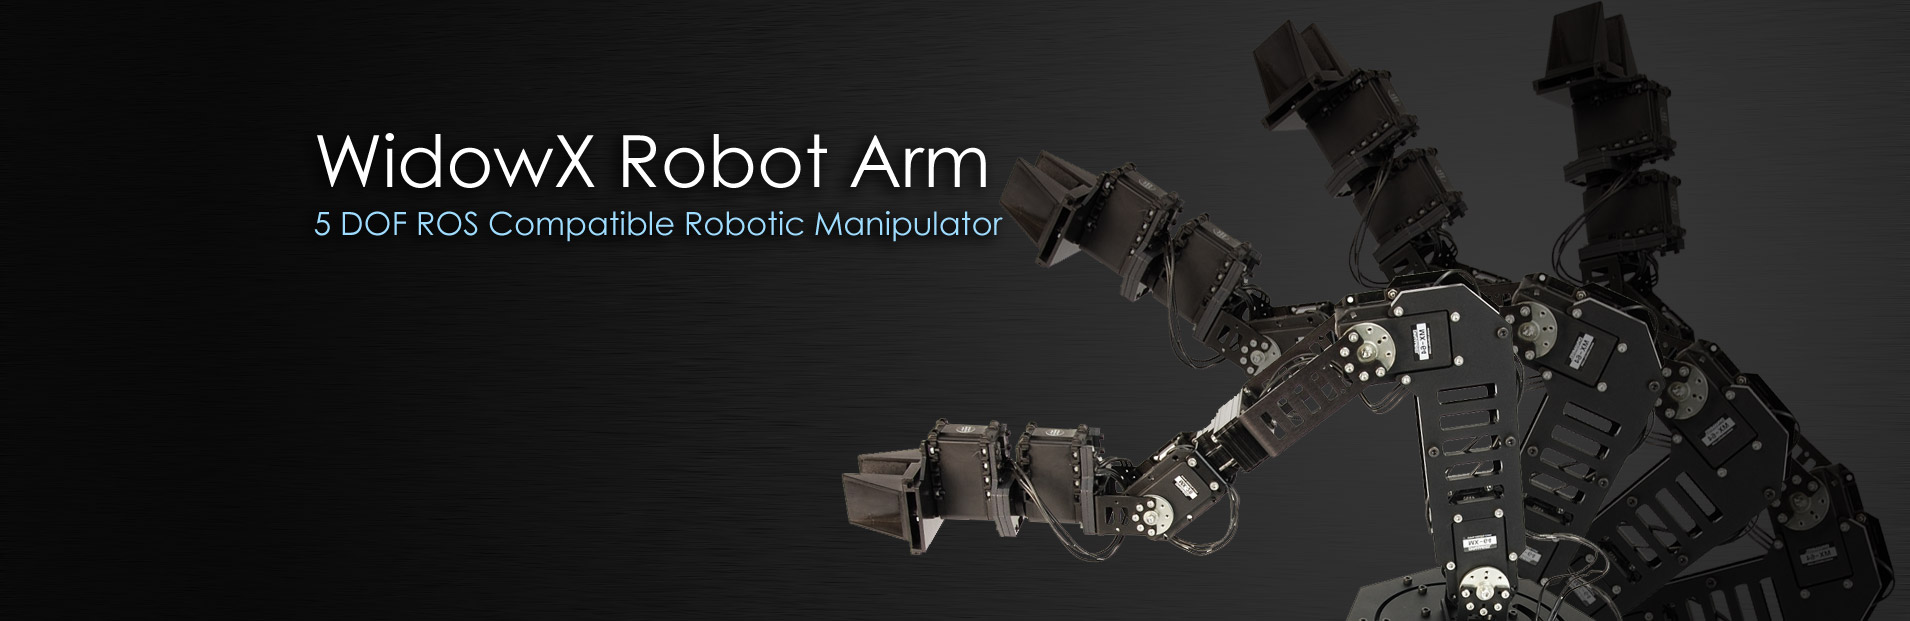 WidowX Robot Arm 6 DOF Robotic Manipulator